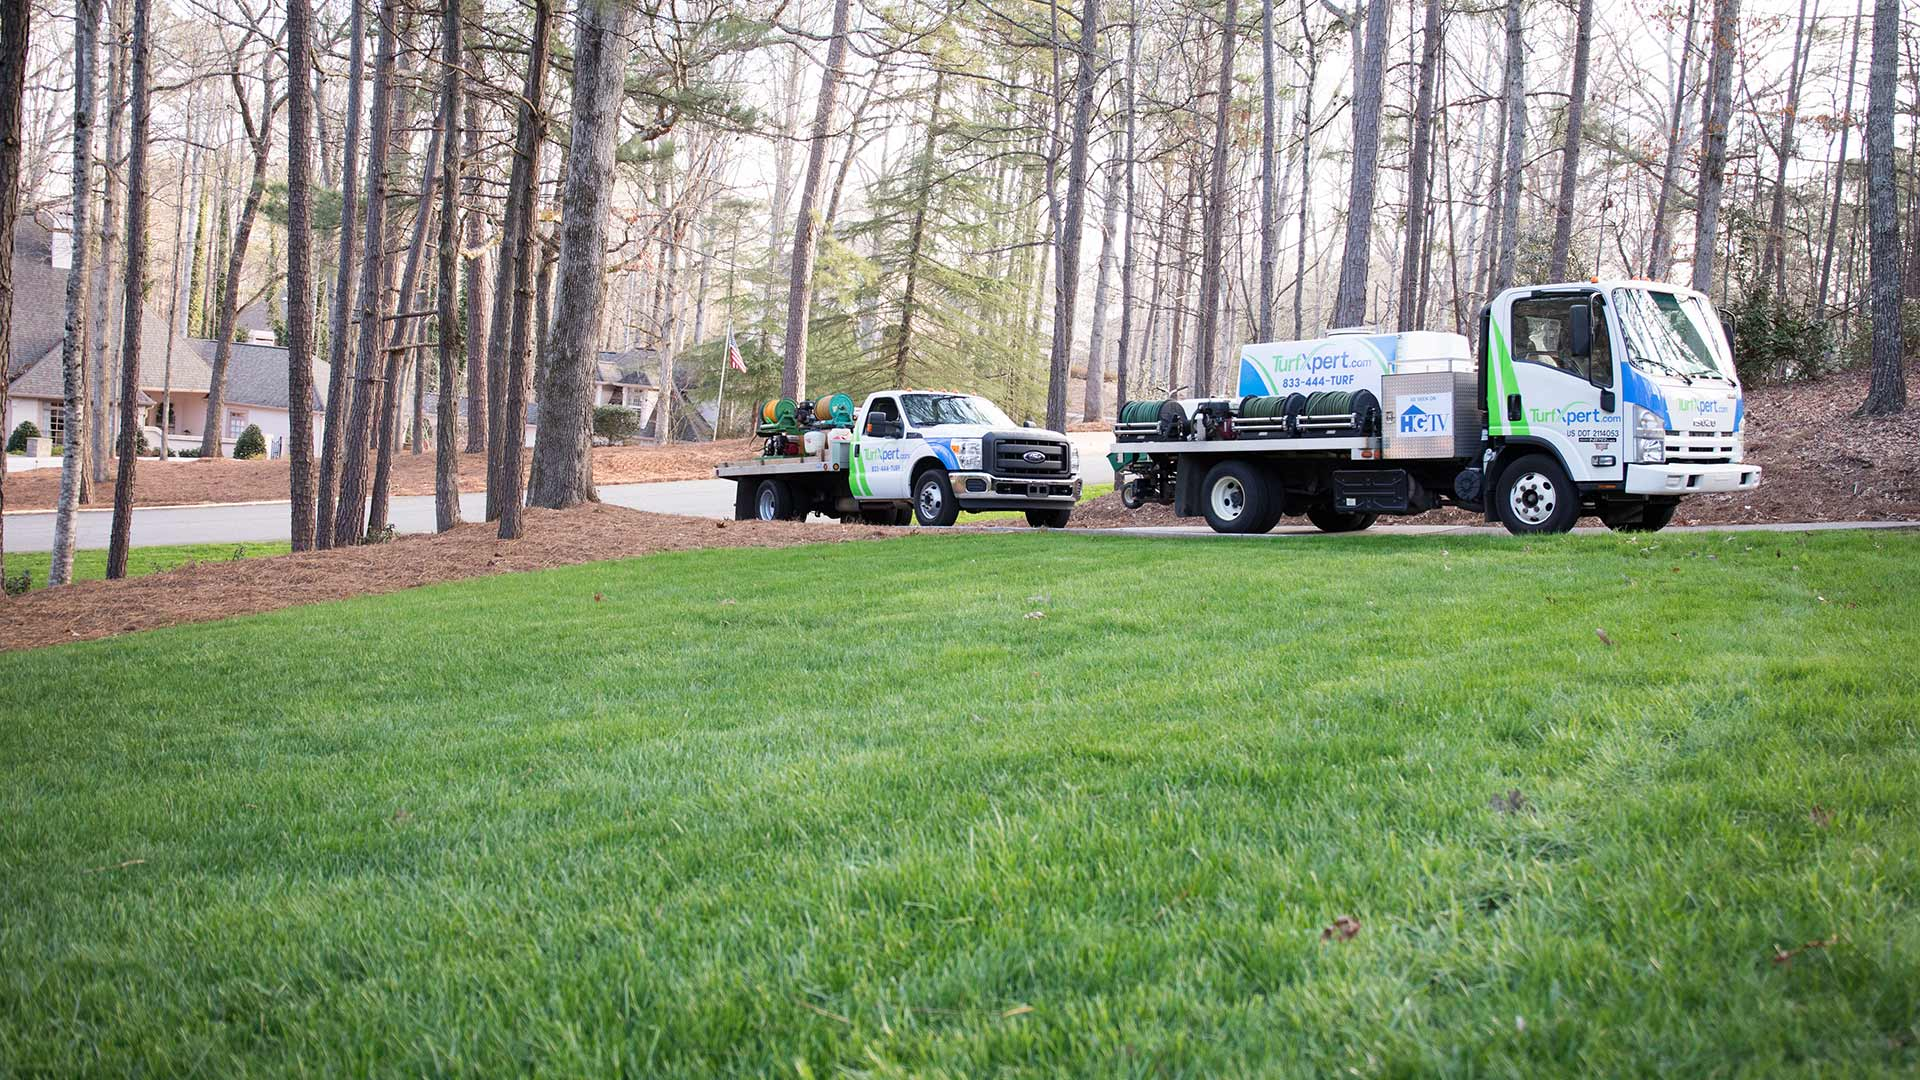 TurfXpert work vehicles arriving to perform lawn care treatments in Kennesaw, GA.